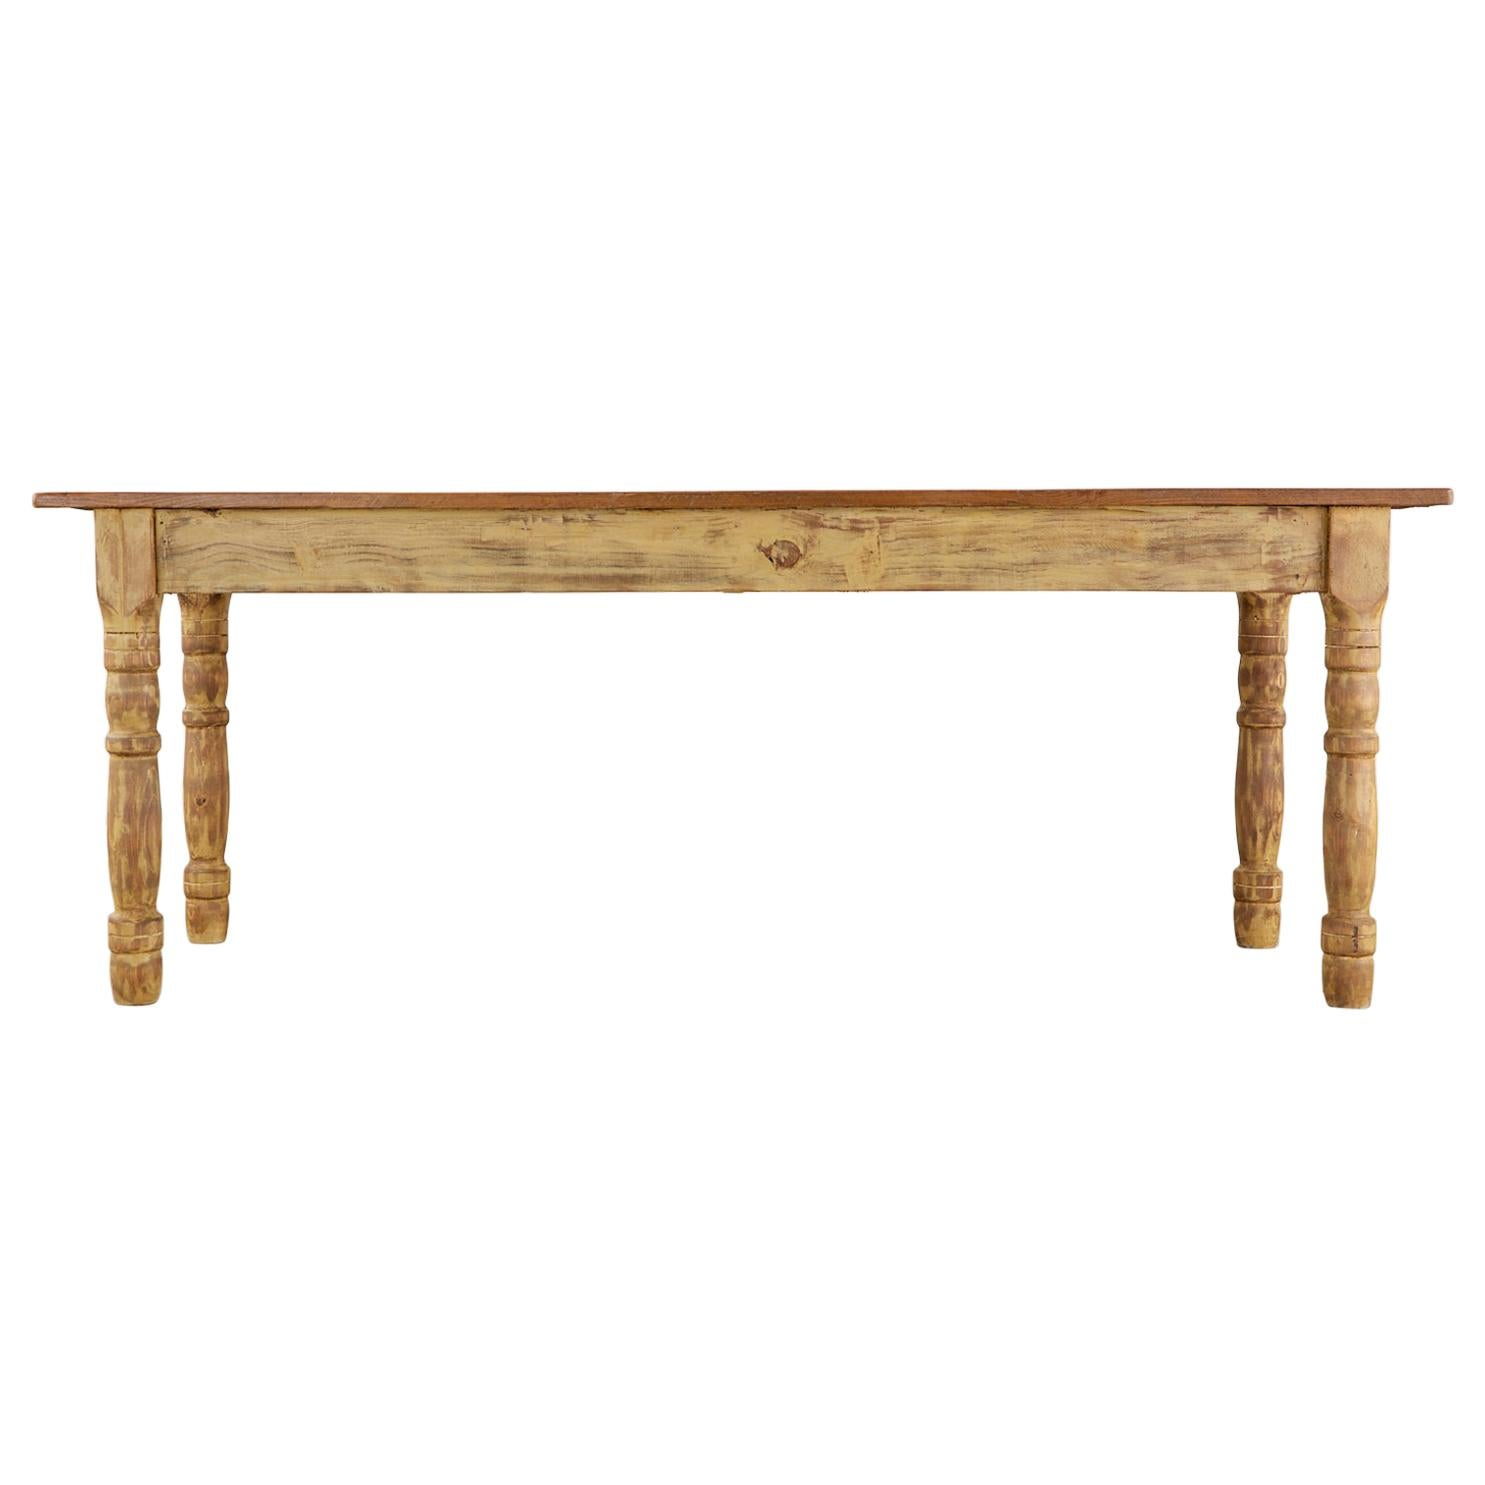 American Pine Barnwood Painted Farmhouse Dining Table